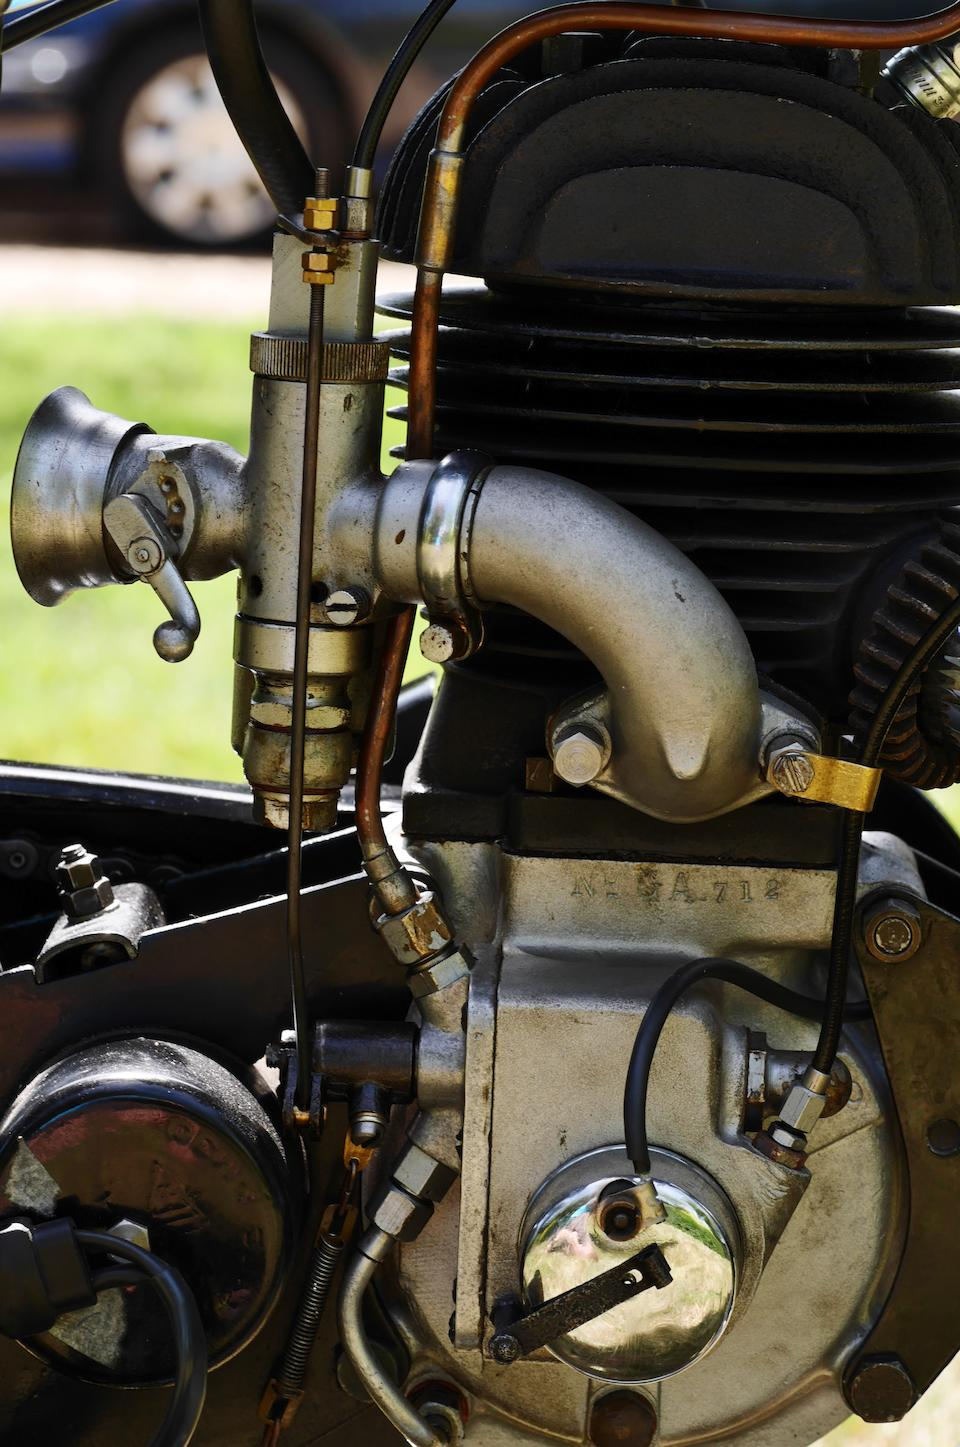 1930 Velocette 249cc GTP Frame no. GP928 Engine no. GA712